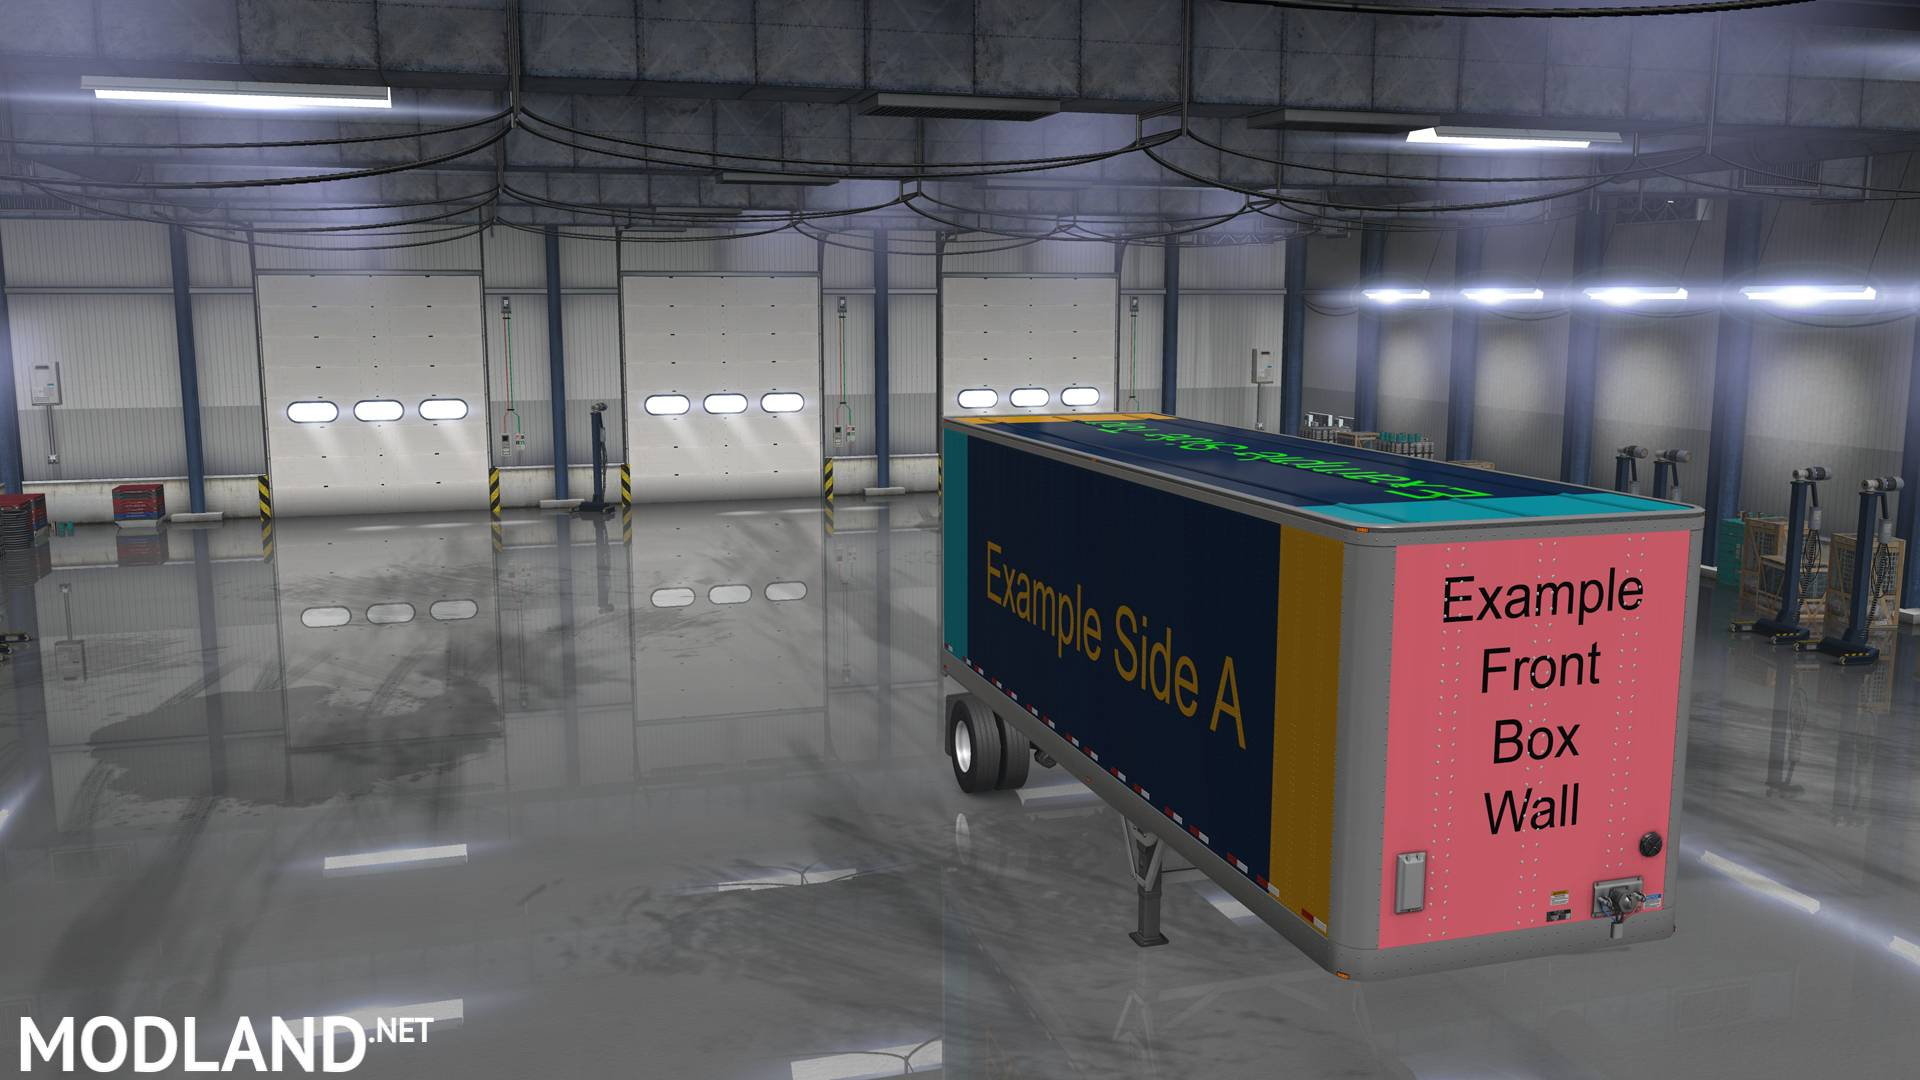 ATS Owned Trailers Templates with Example Skin Mod mod for American Truck Simulator, ATS